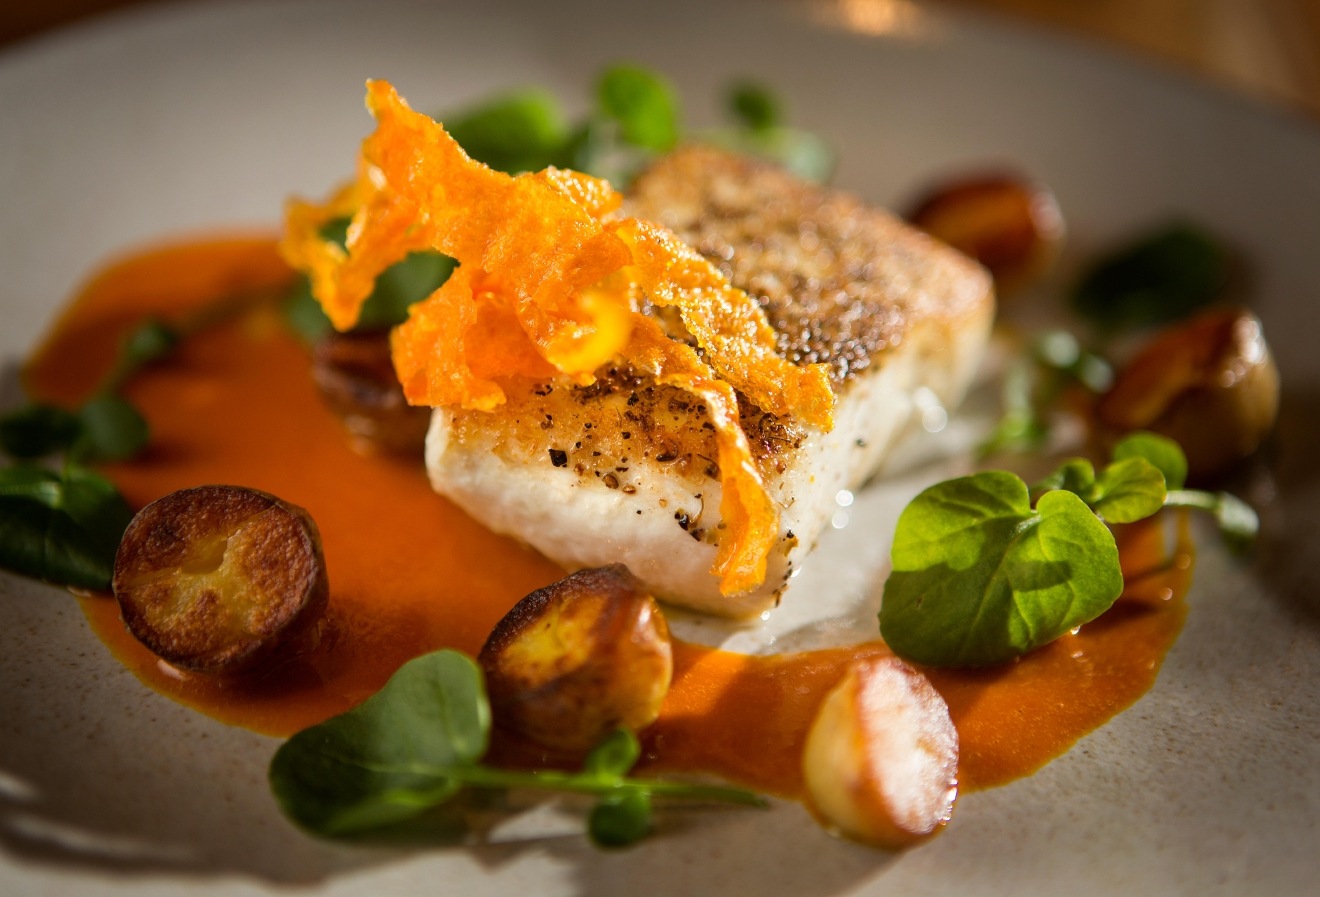 For one of the entrees, Chef Joe Ritchie will be serving Seared Halibut, with lemon-carrot puree, new potatoes, and wild watercress, during Seattle Restaurant Week at Goldfinch Tavern at the Four Seasons Hotel. Other entrees include Grilled Beef Hanger Steak and Stinging Nettle Pasta. (Sy Bean / Seattle Refined)